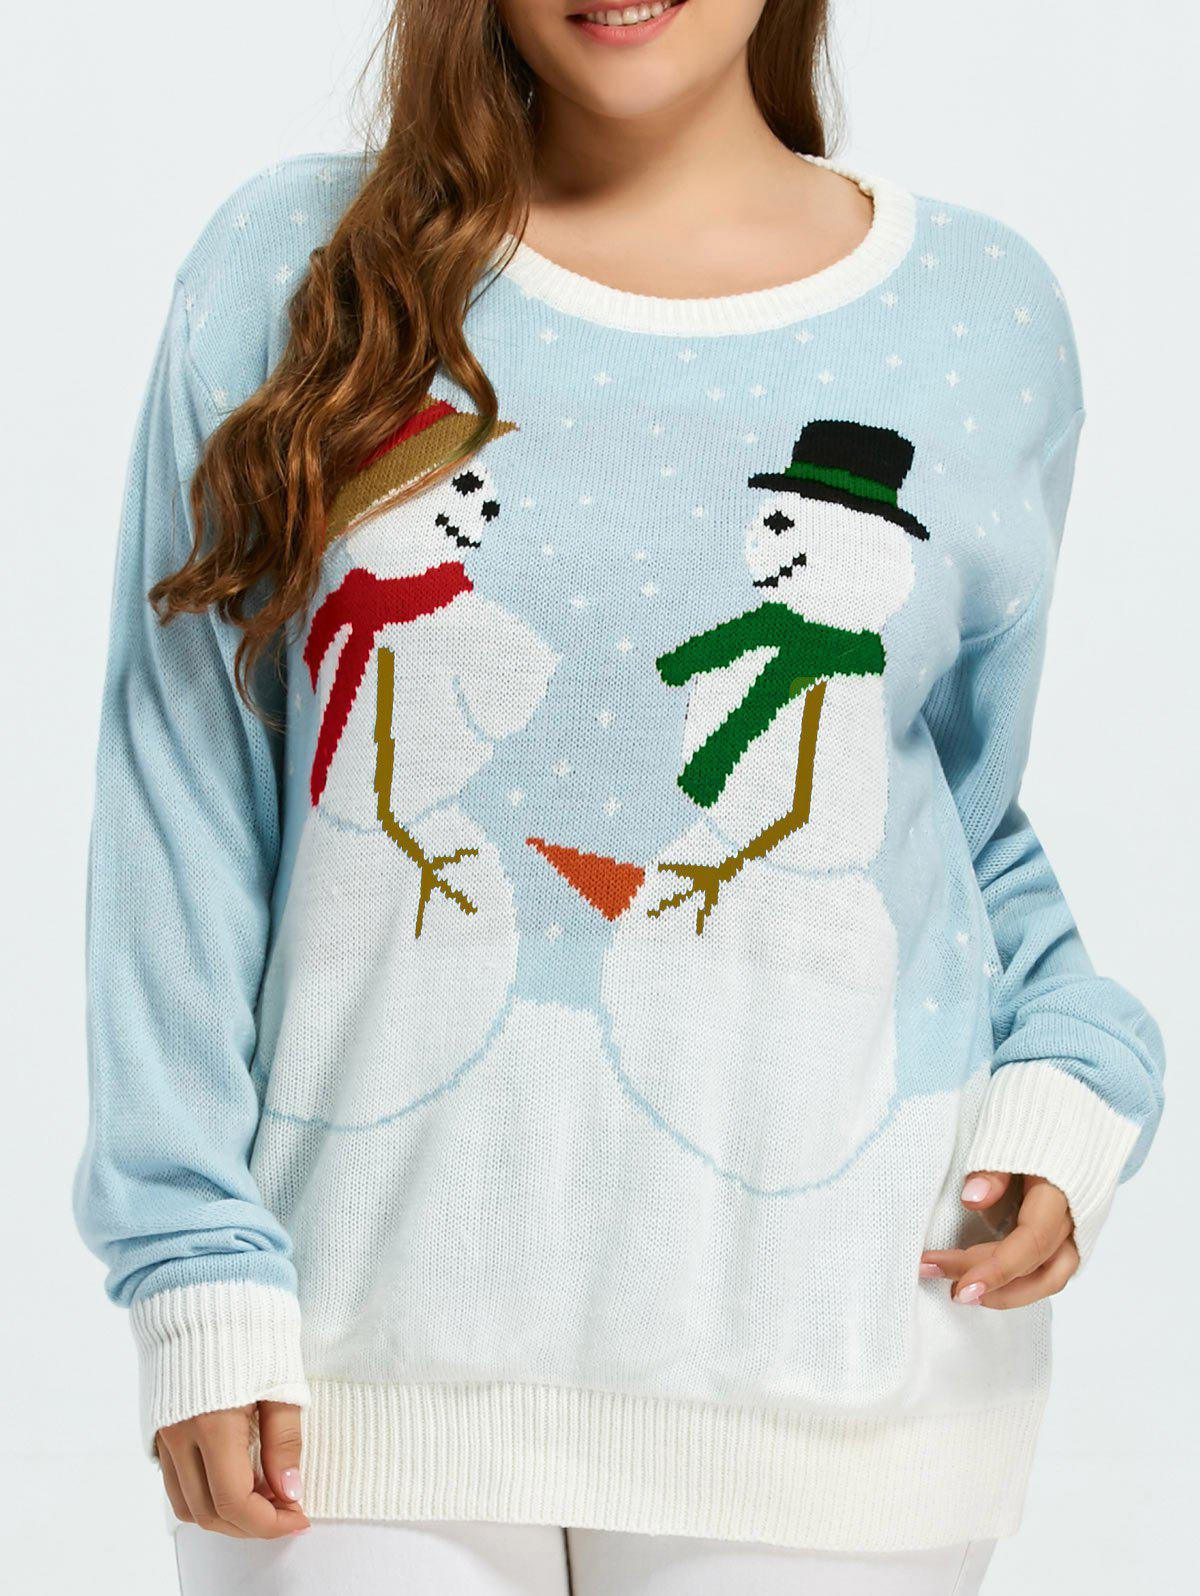 Funny Snowman Pattern Christmas Cute Plus Size SweaterWOMEN<br><br>Size: 3XL; Color: SKY BLUE; Type: Pullovers; Material: Cotton,Spandex; Sleeve Length: Full; Collar: Round Neck; Technics: Computer Knitted; Style: Casual; Season: Fall,Spring,Winter; Pattern Type: Character; Weight: 0.550kg; Package Contents: 1 x Sweater;